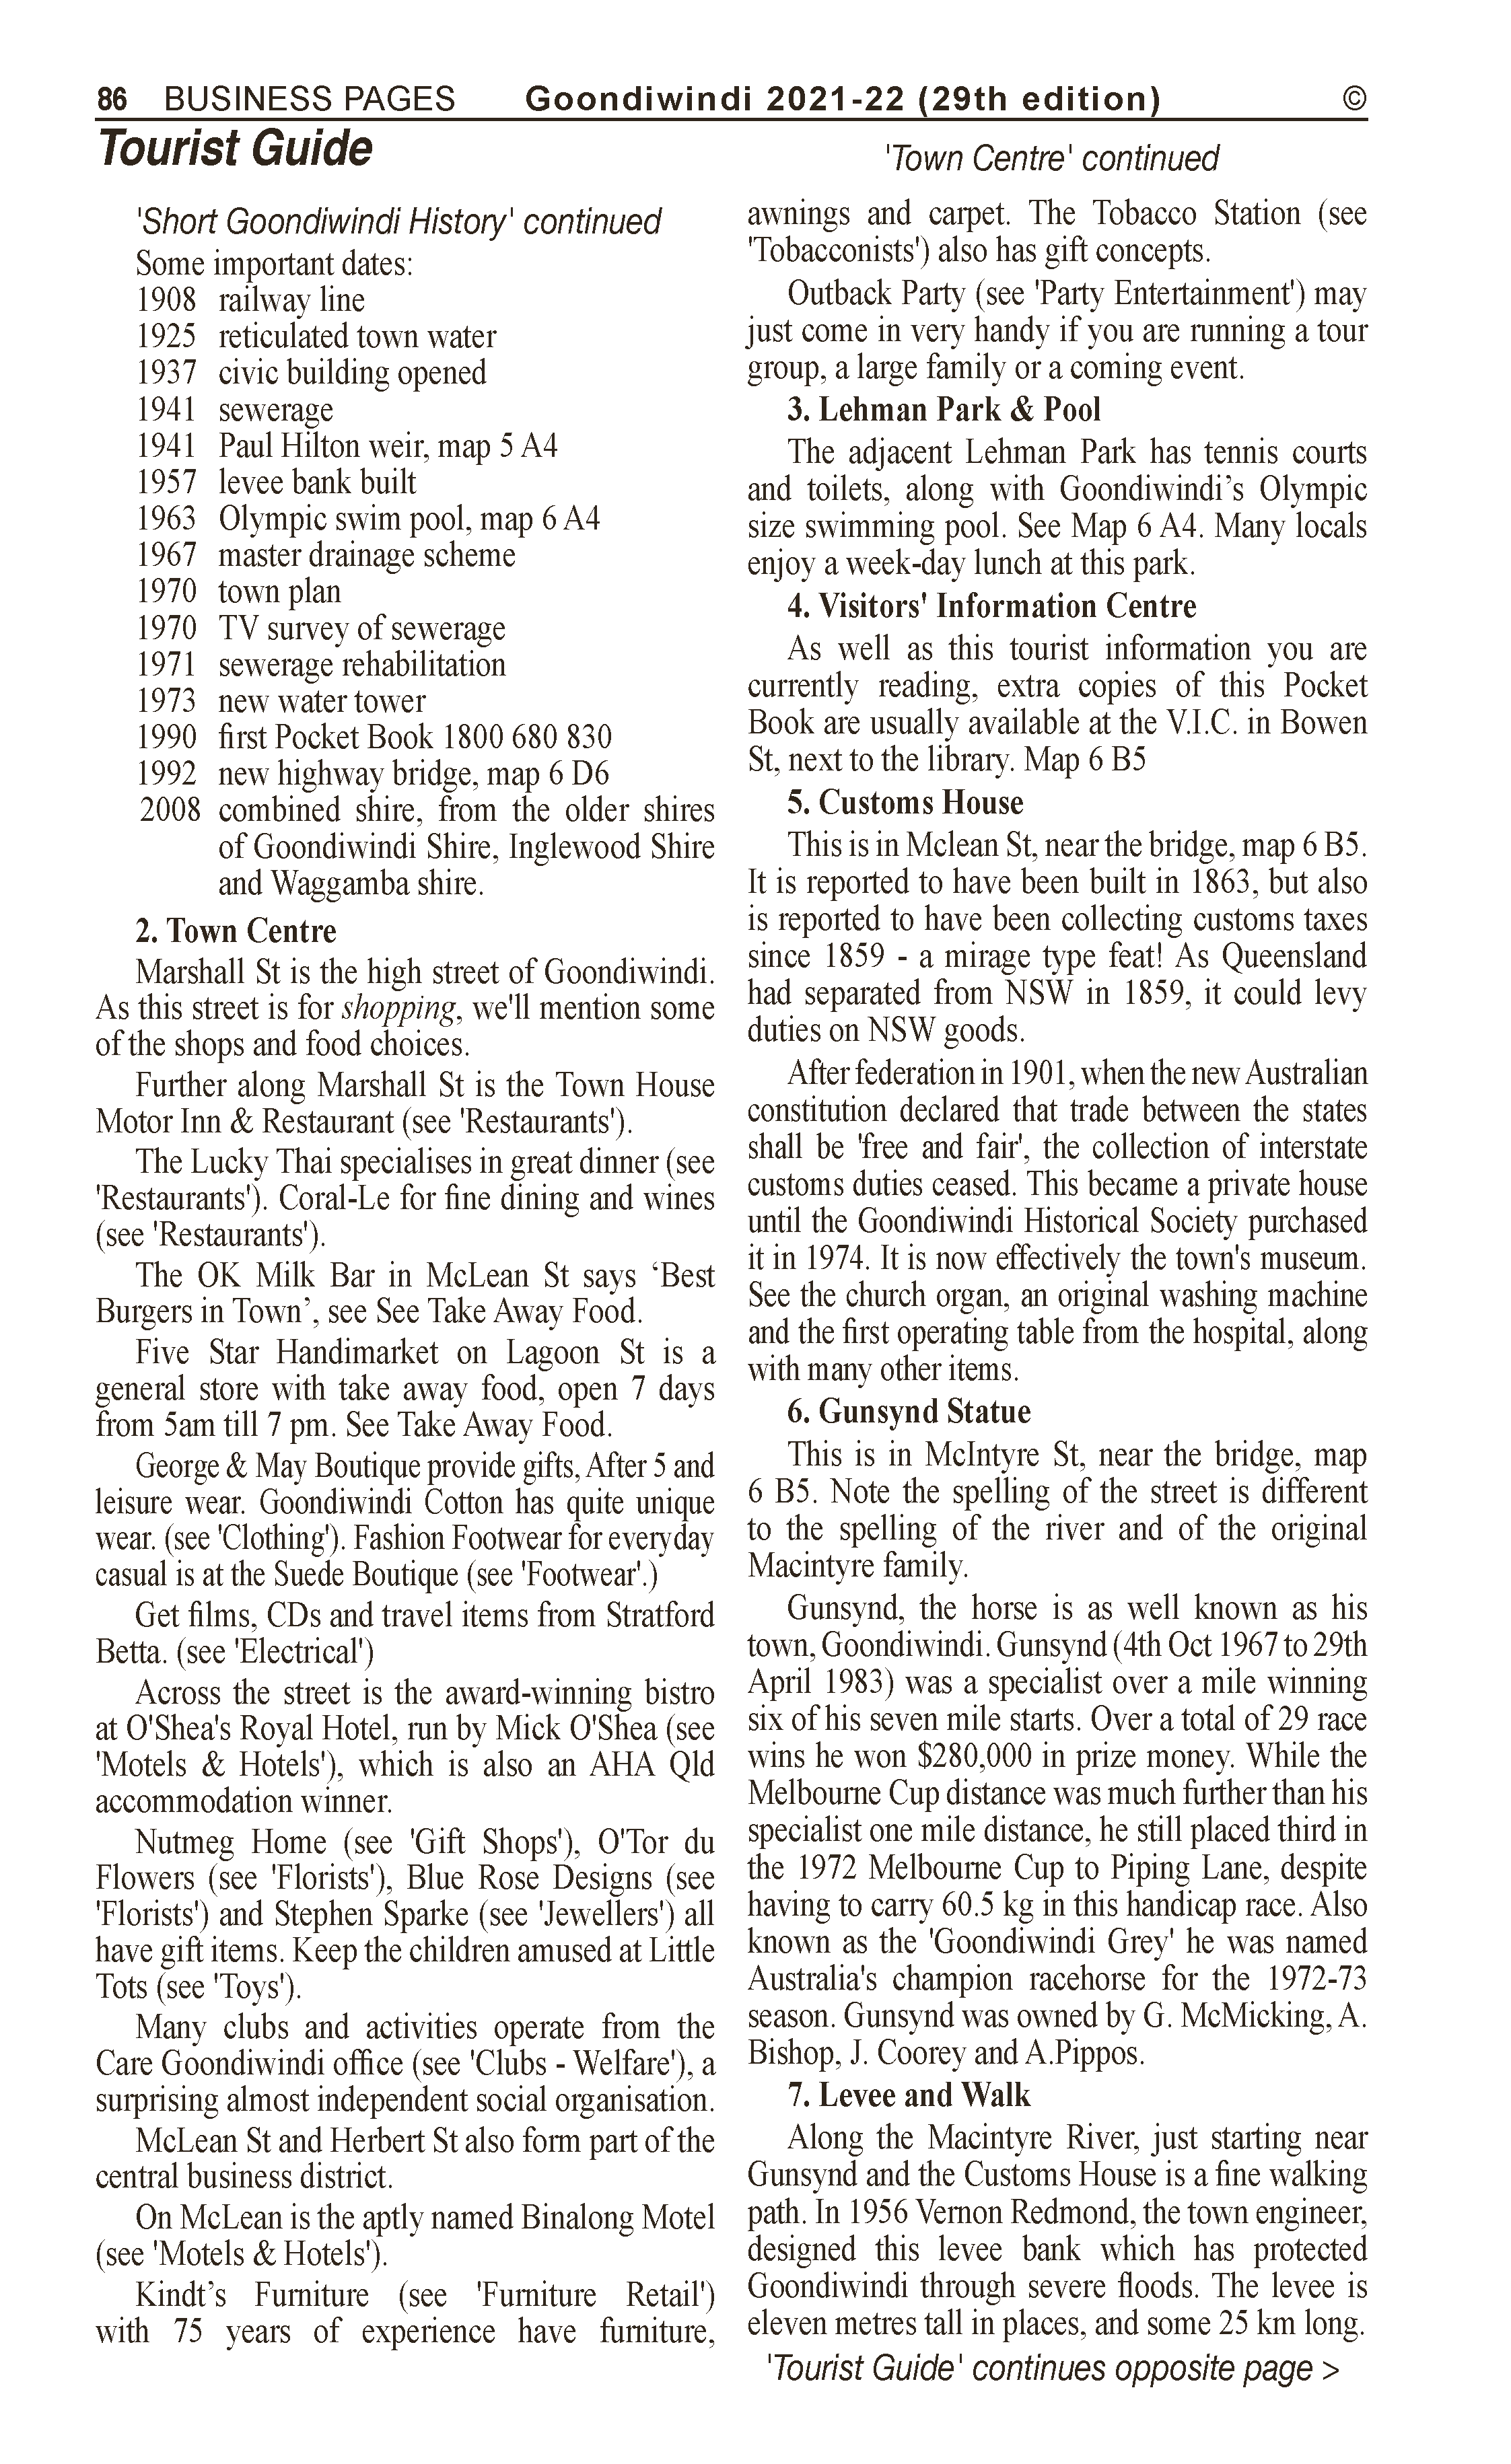 Goondiwindi Mini Storage | Storage – General in Goondiwindi | PBezy Pocket Books local directories - page 86